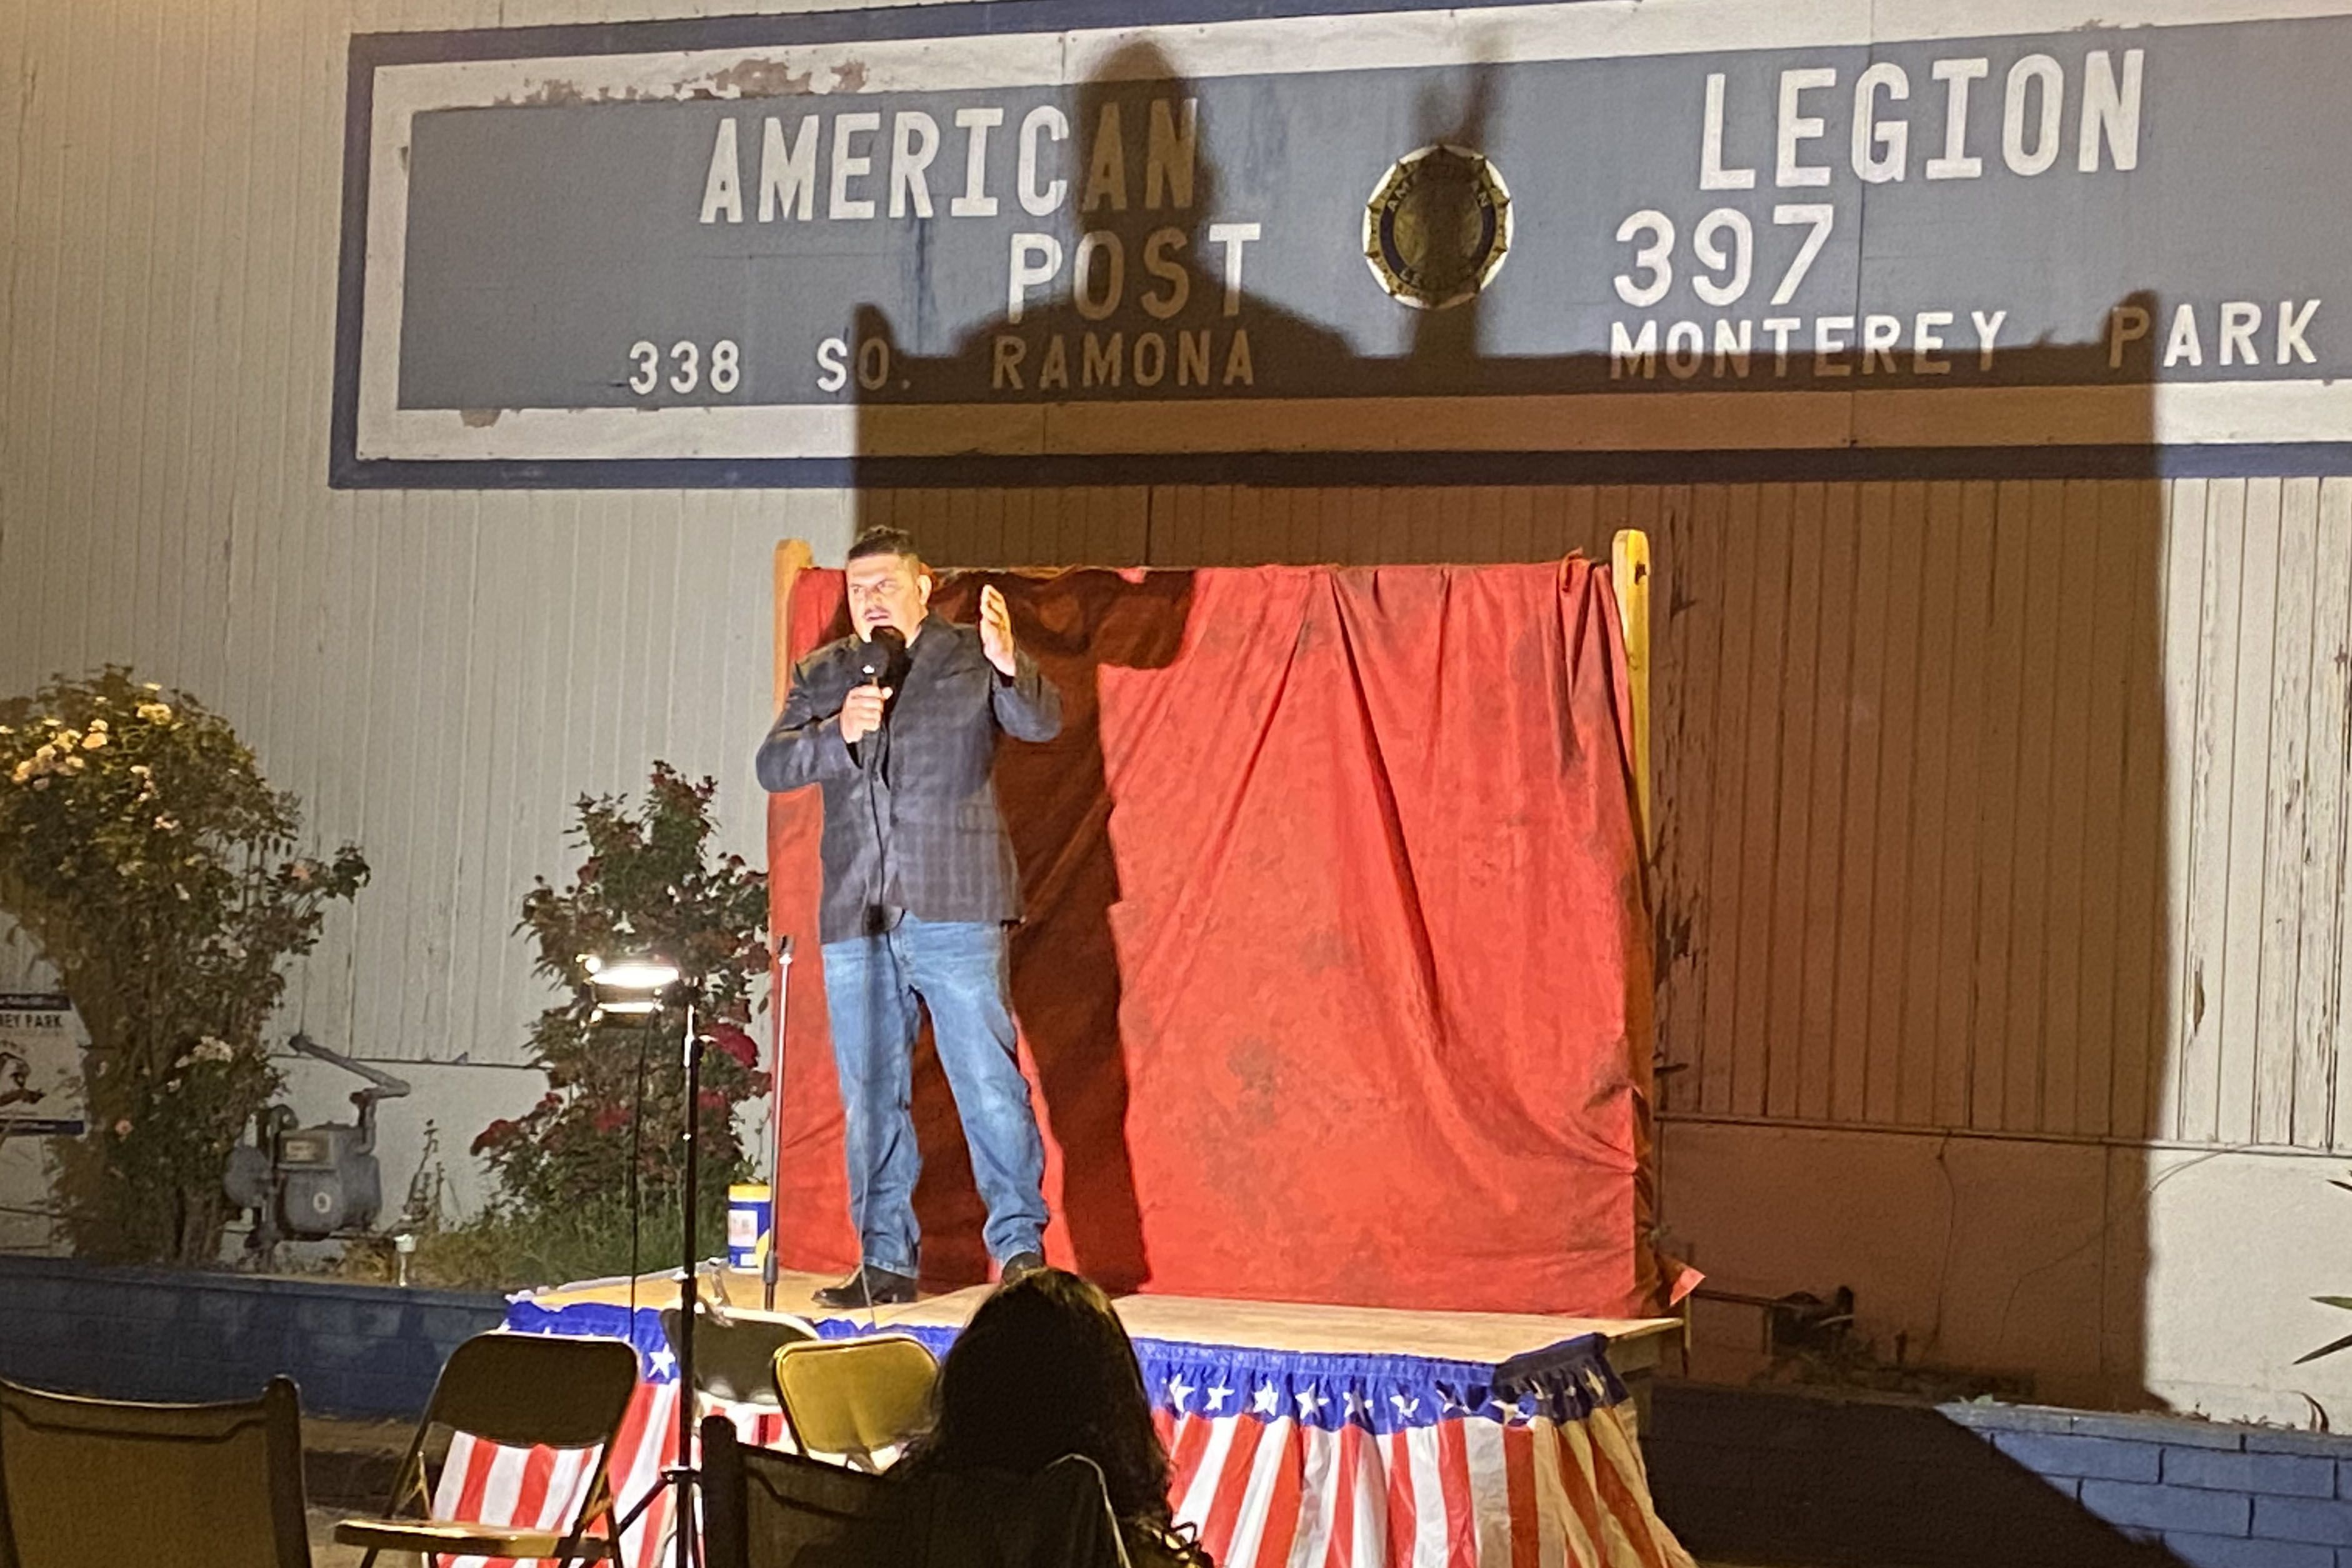 Caption: Comedian Fernando Sanchez warms up attendees of American Legion Post 397's comedy night Oct. 10. The Monterey Park, Cal. post has turned to events like this to raise money during the pandemic., Credit: Robert Garrova / American Homefront